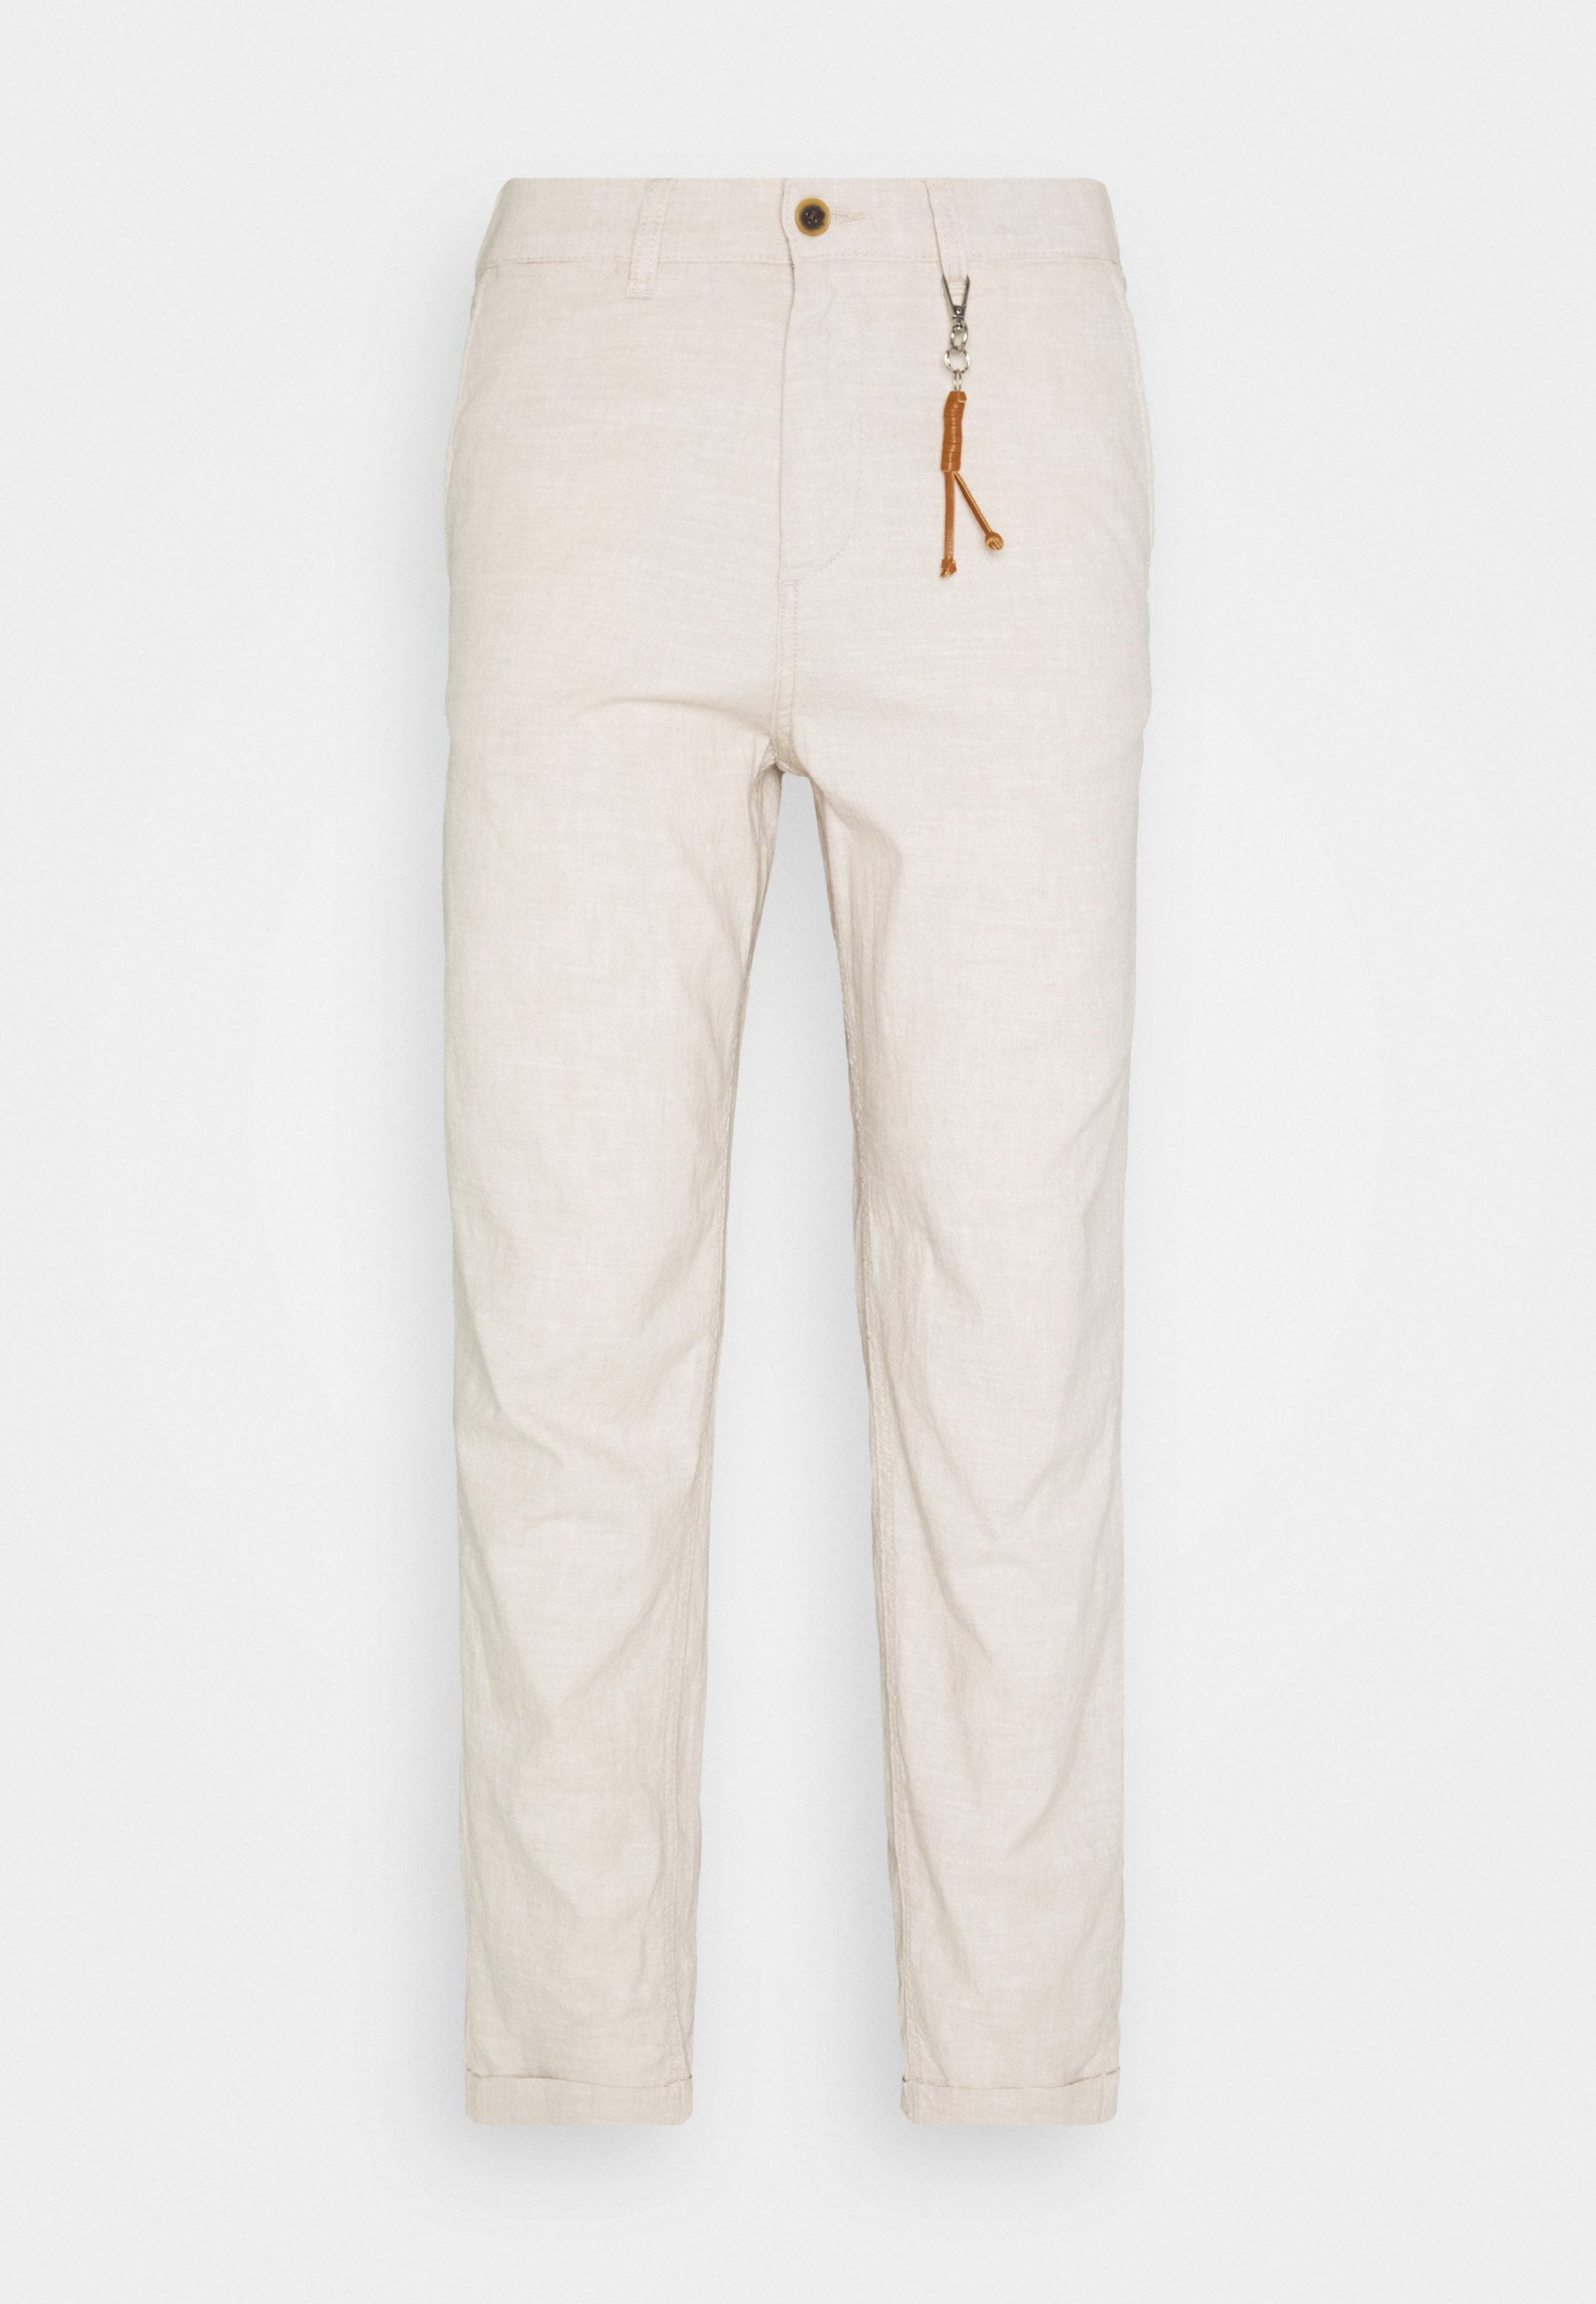 jack jones hose site zalando.de